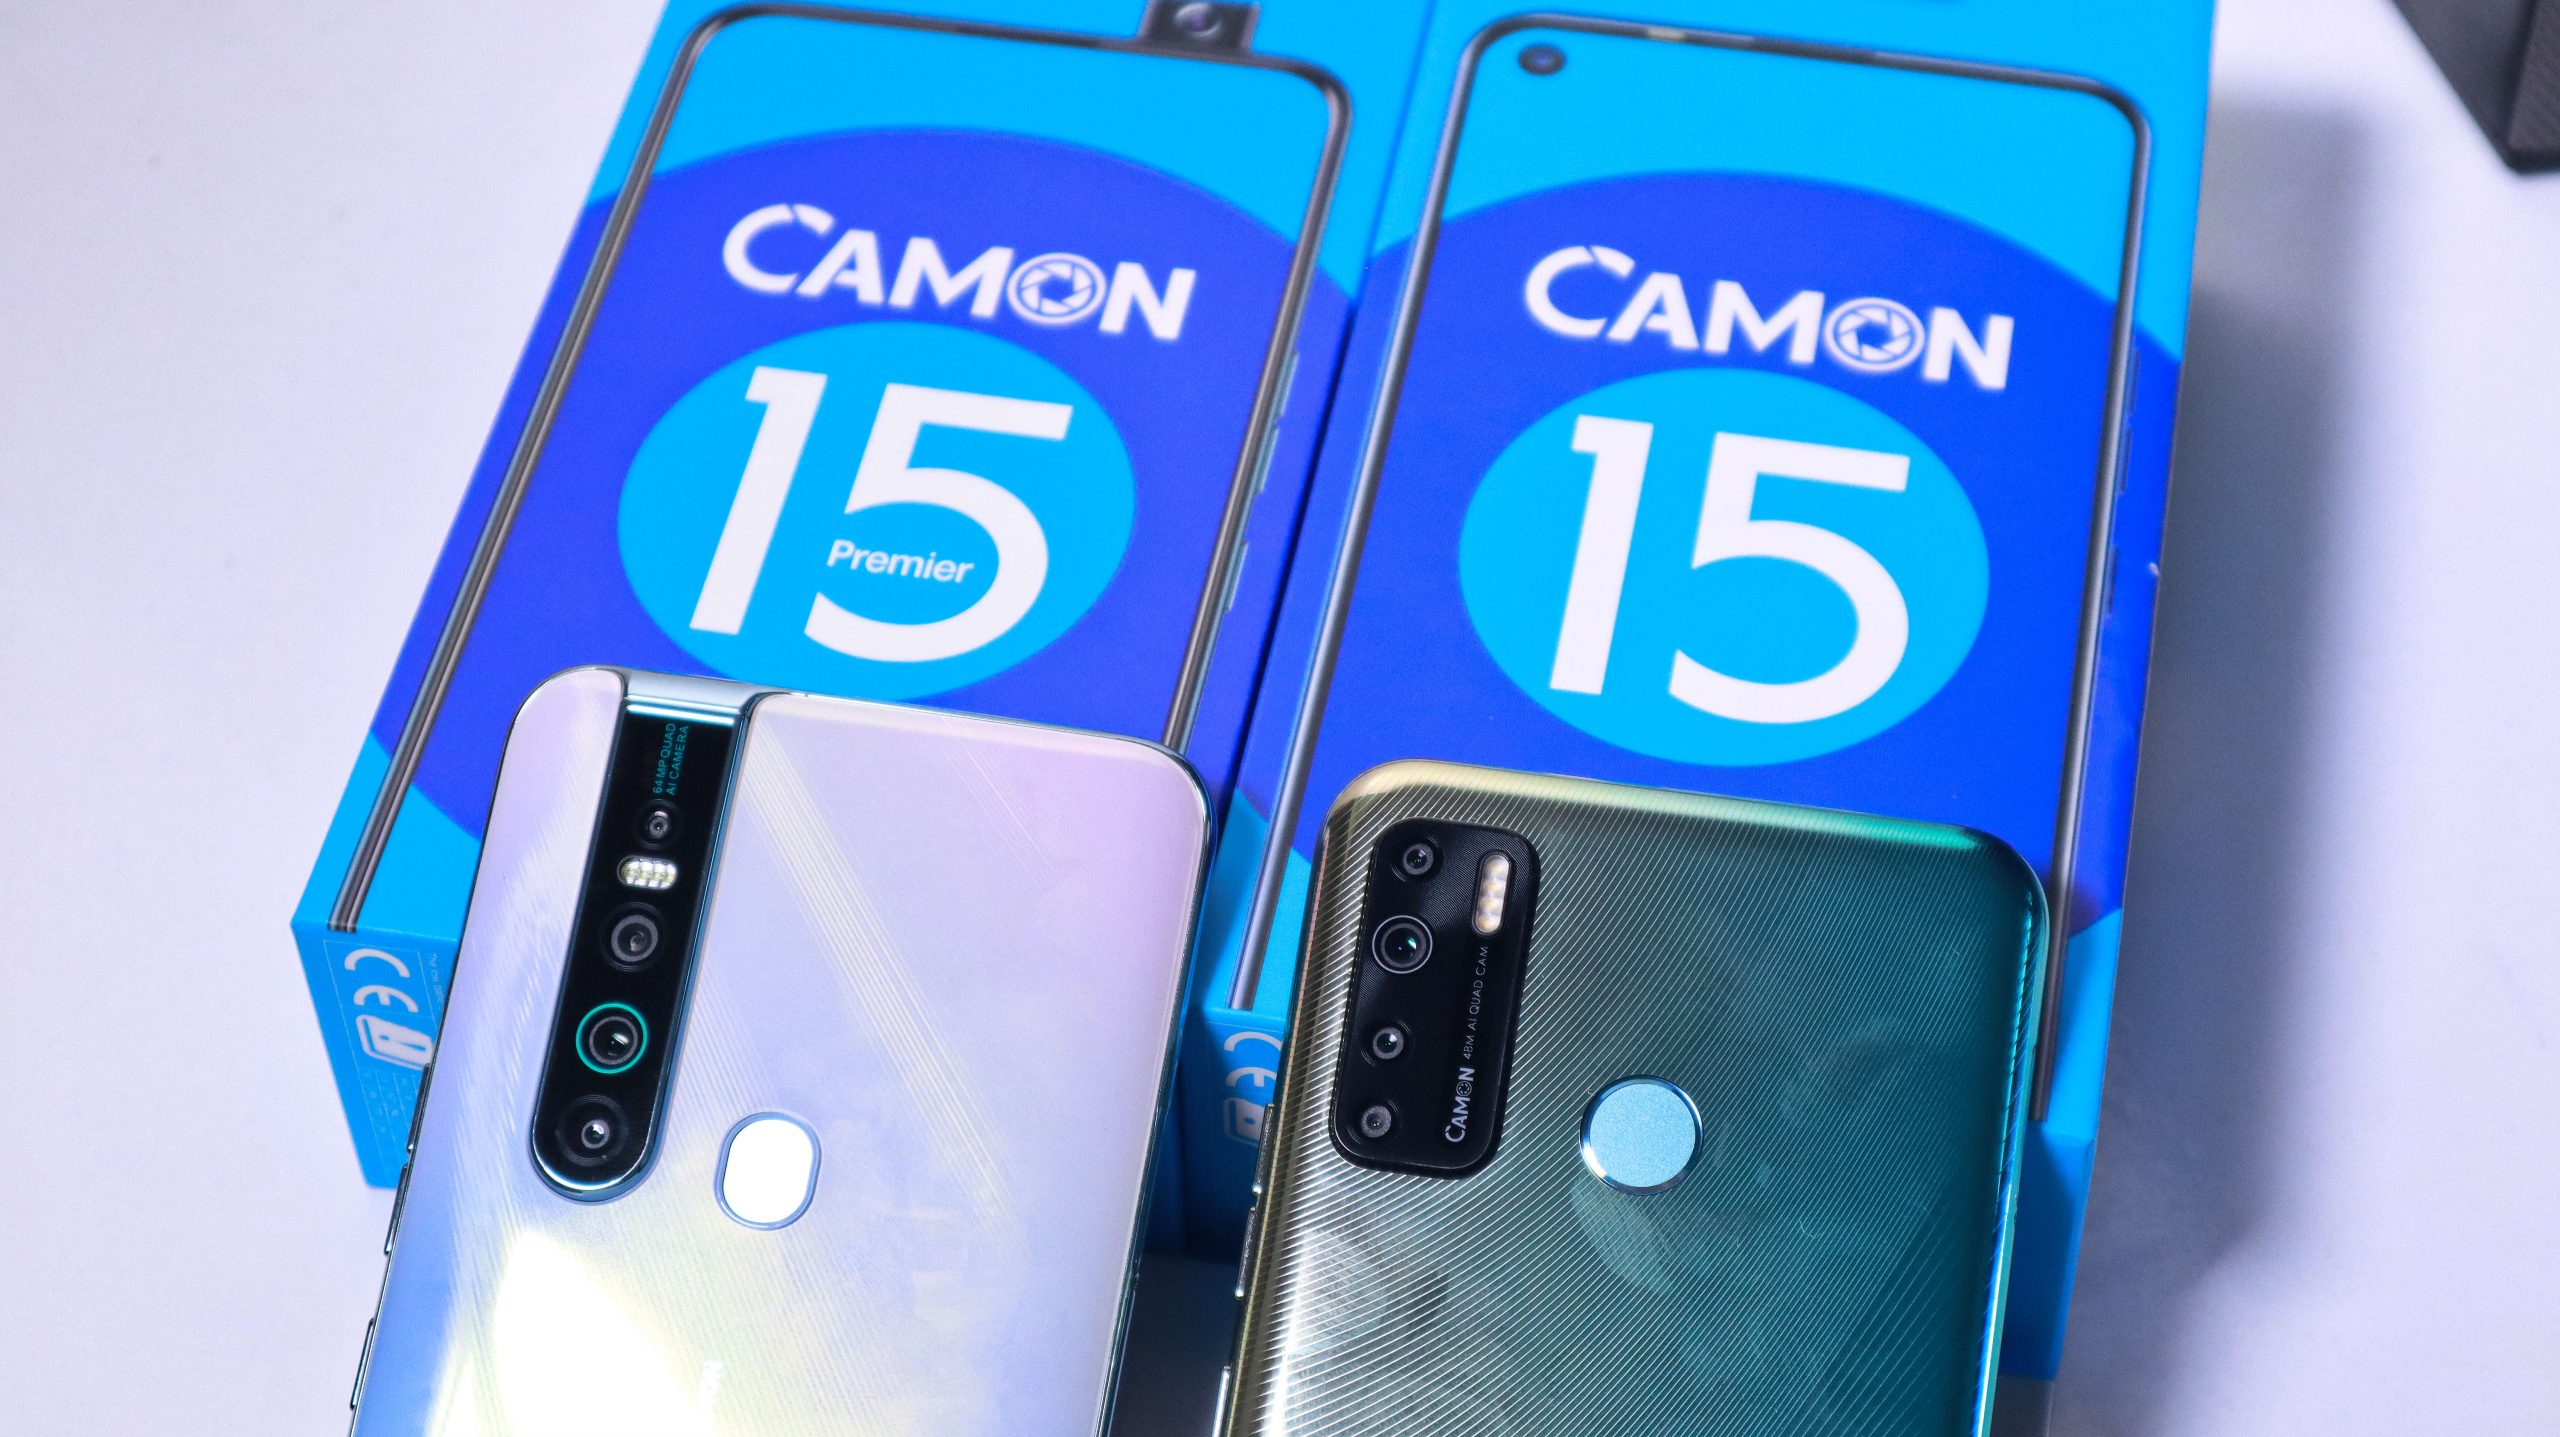 Tech Review: Unboxing the Tecno Camon 15 - Newslibre